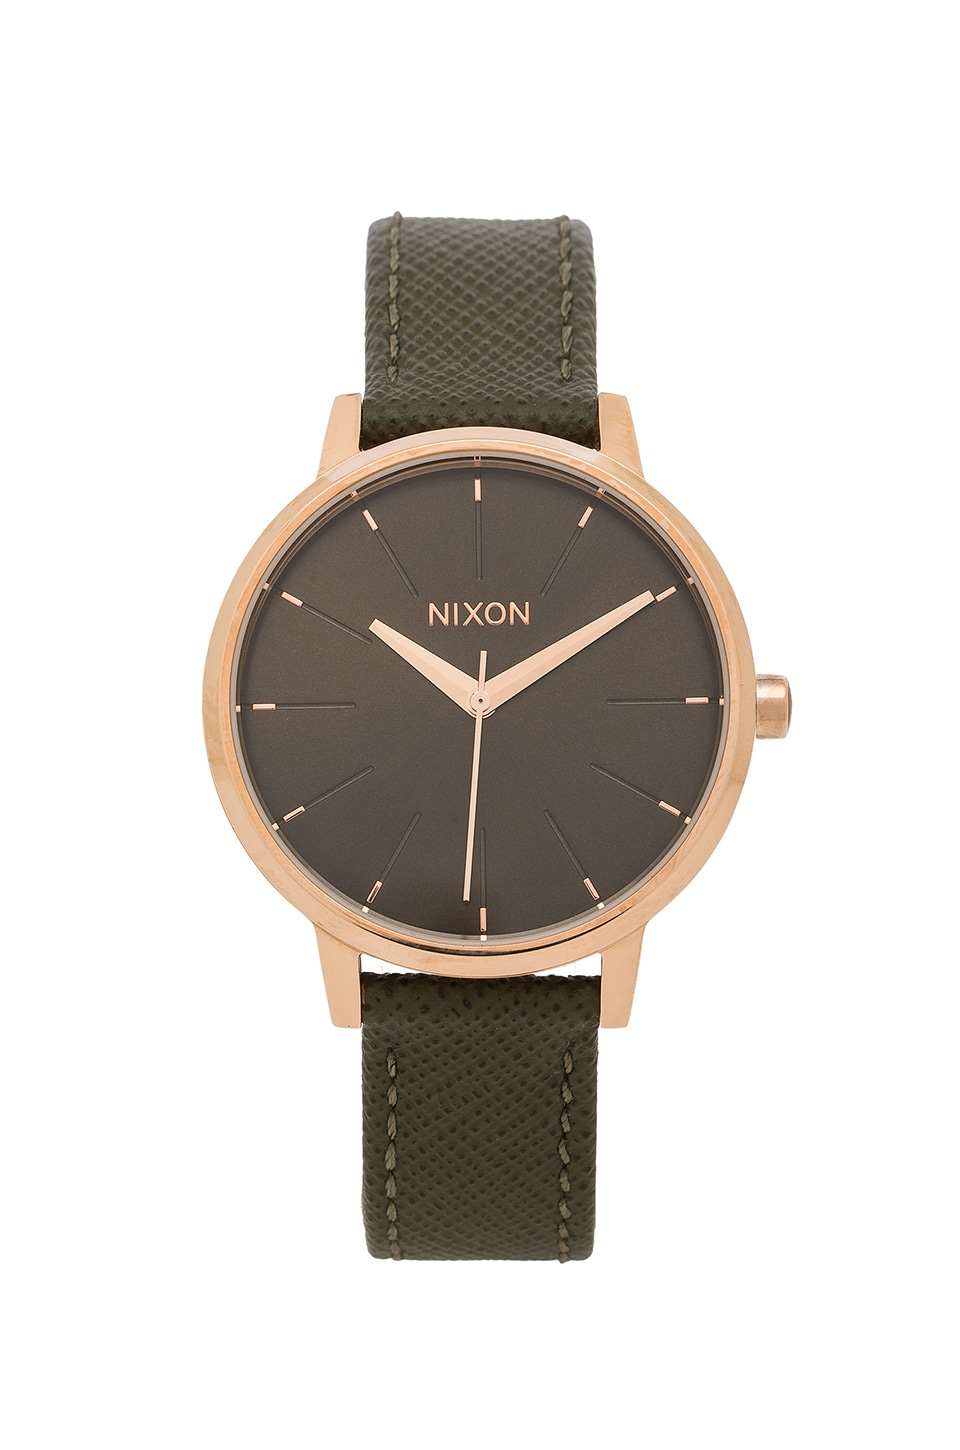 Nixon Kensington Leather in Rose Gold & Green